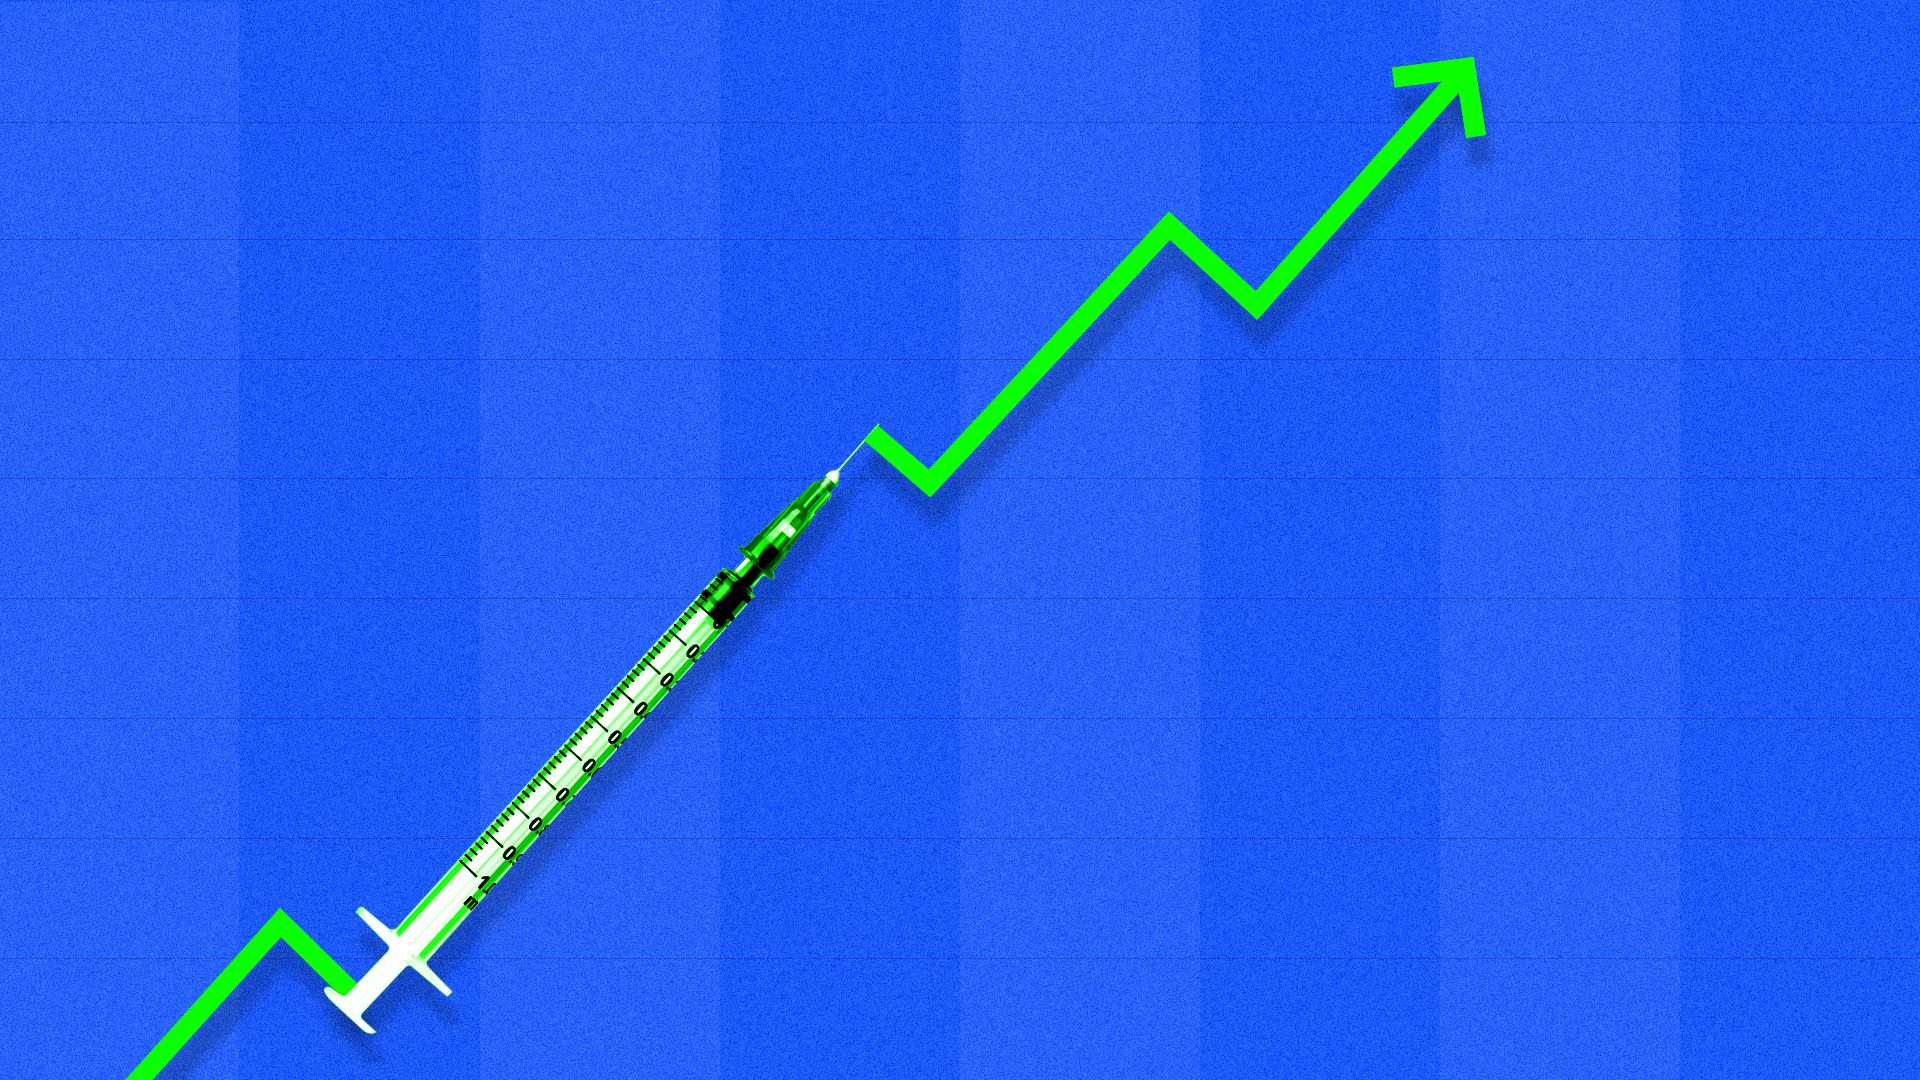 An illustration of a syringe on a graph going up.